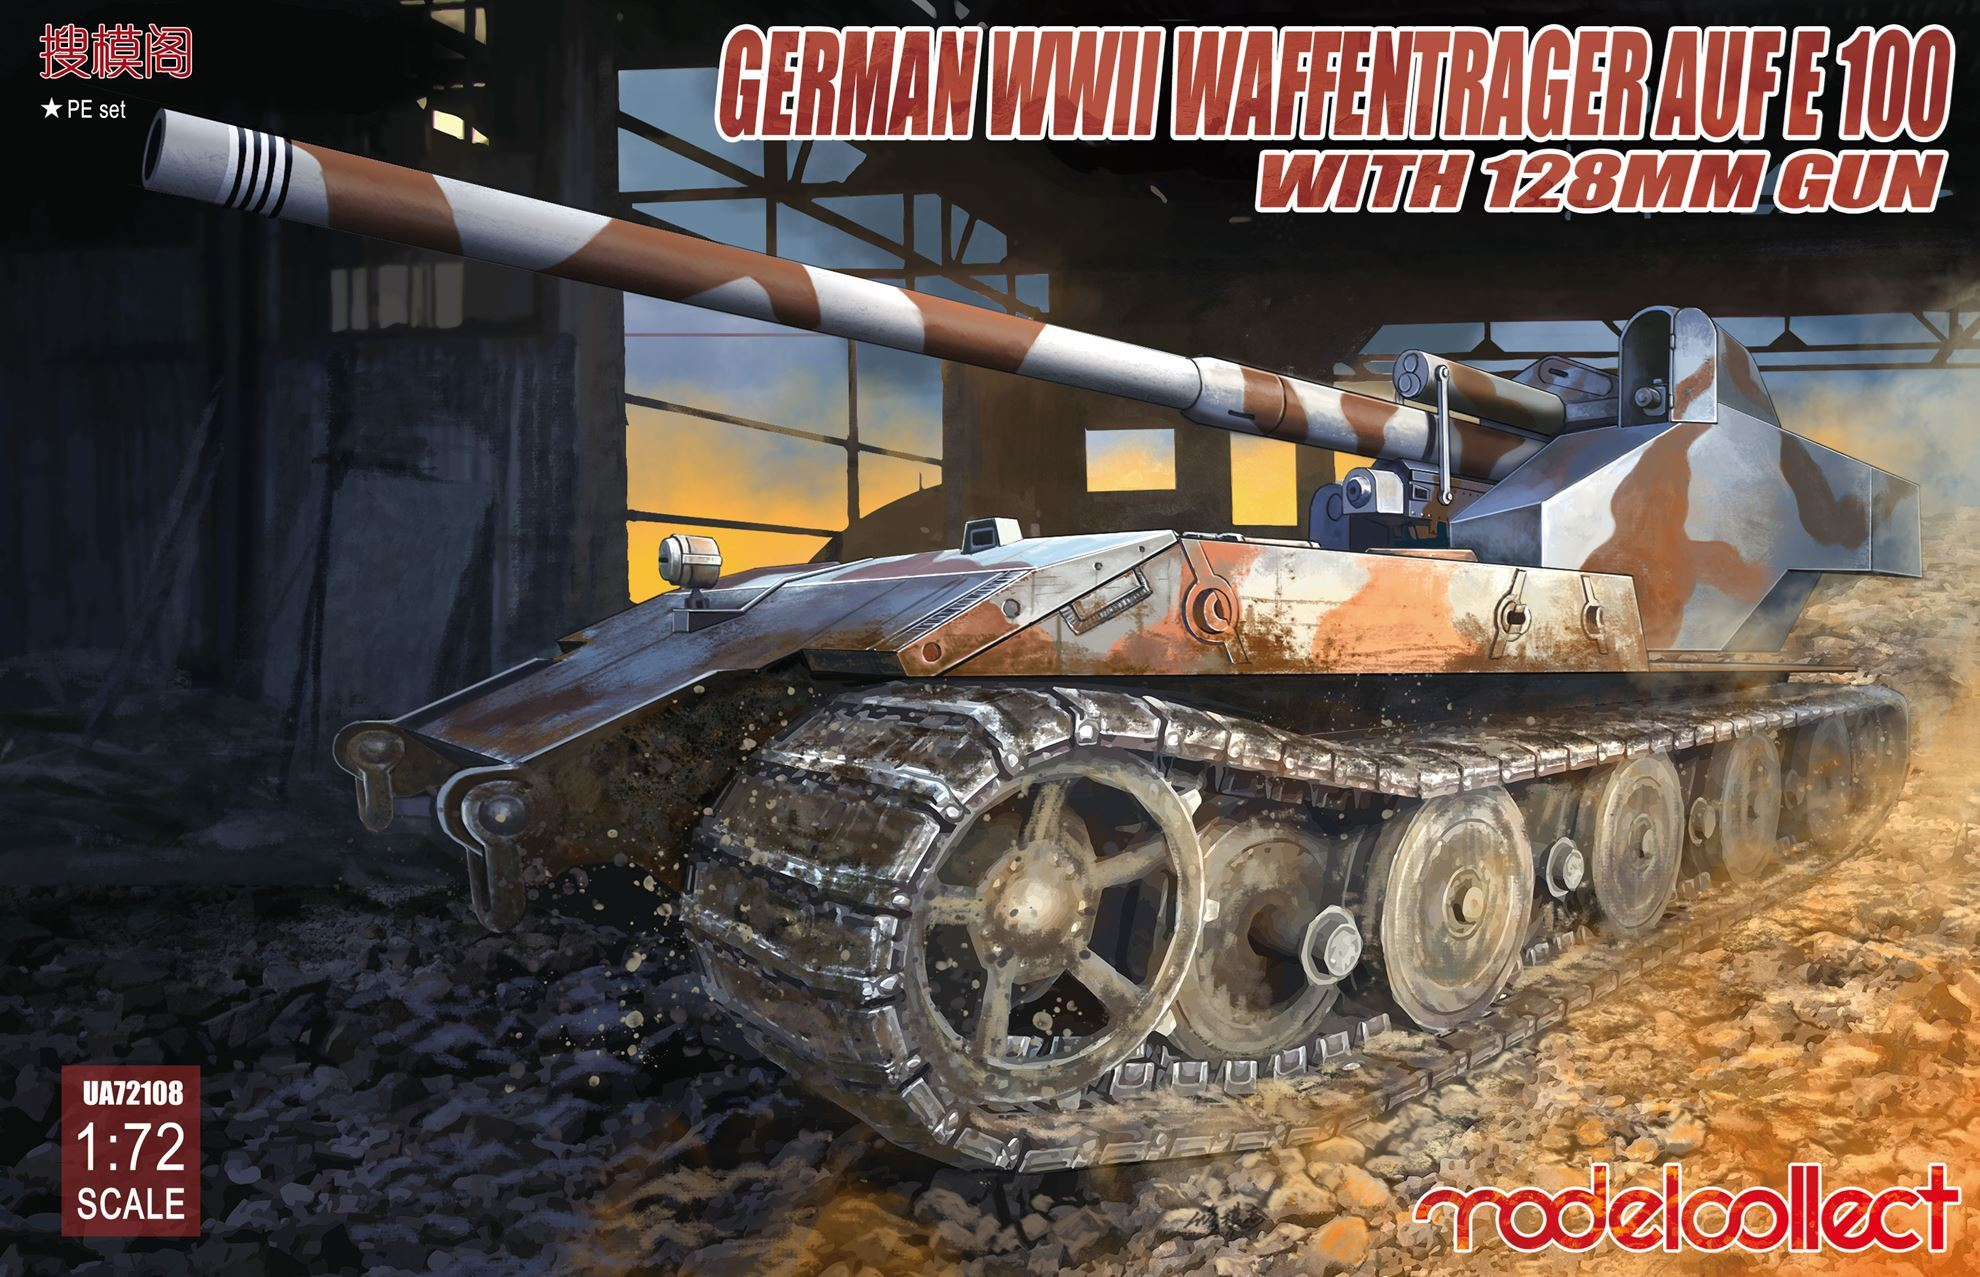 ModelCollect German WWII E-100 panzer weapon carrier with 128mm gun